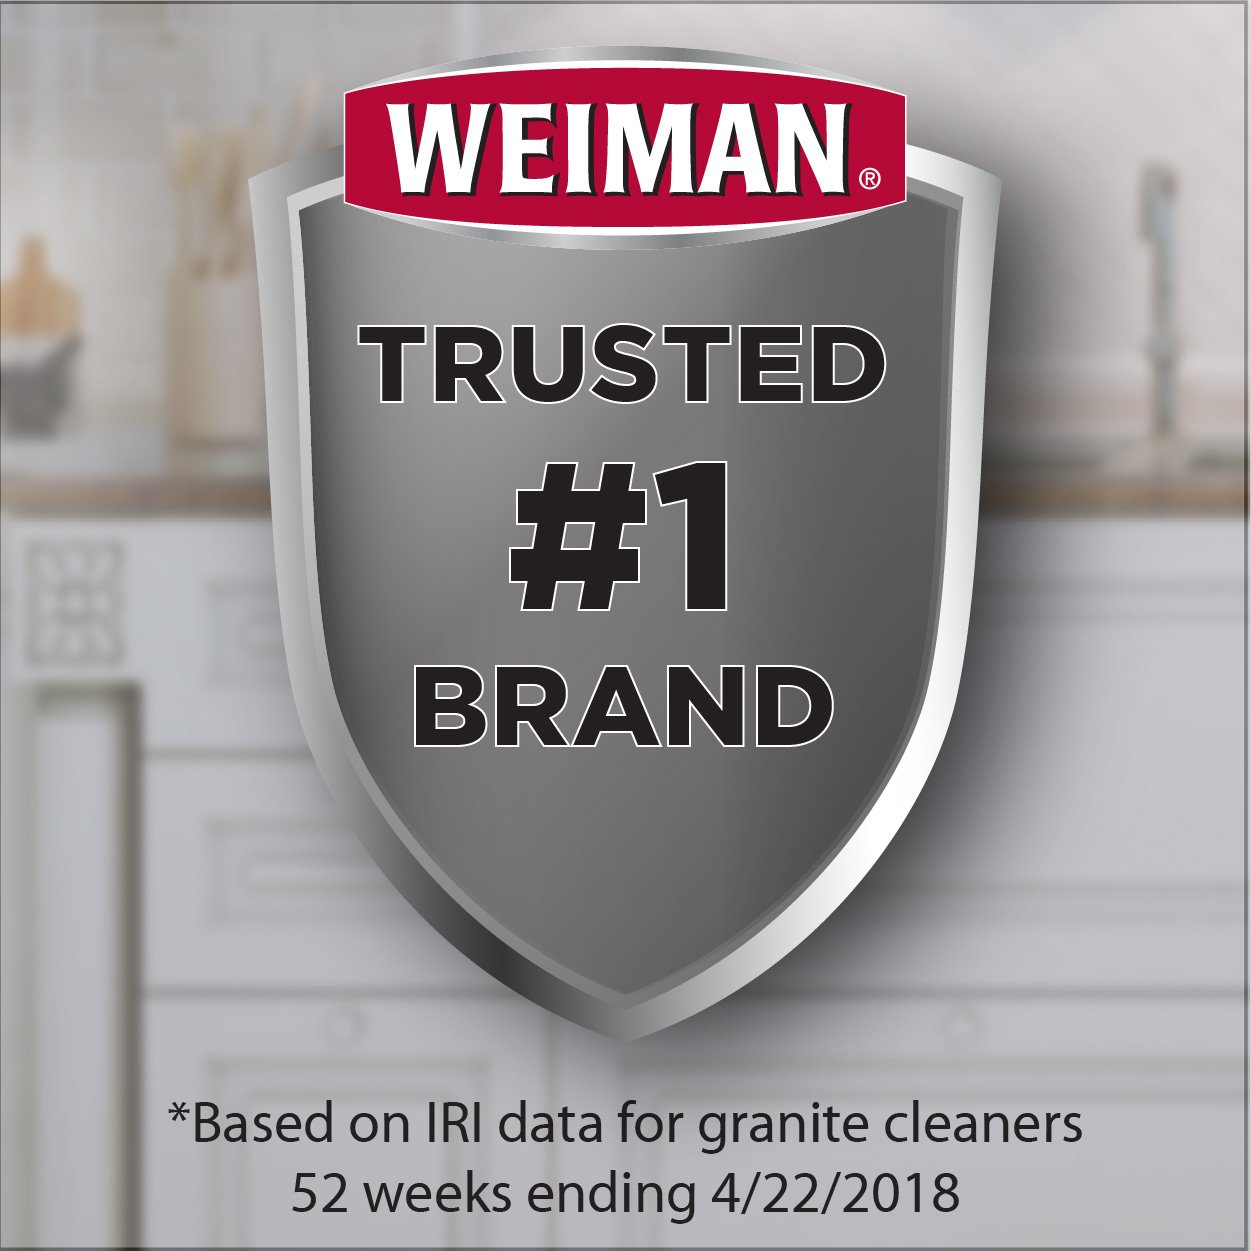 Weiman Granite Cleaner and Polish - 8 Ounce 6 Pack - For Granite Marble Soapstone Quartz Quartzite Slate Limestone Corian Laminate Tile Countertop and More by Weiman (Image #7)